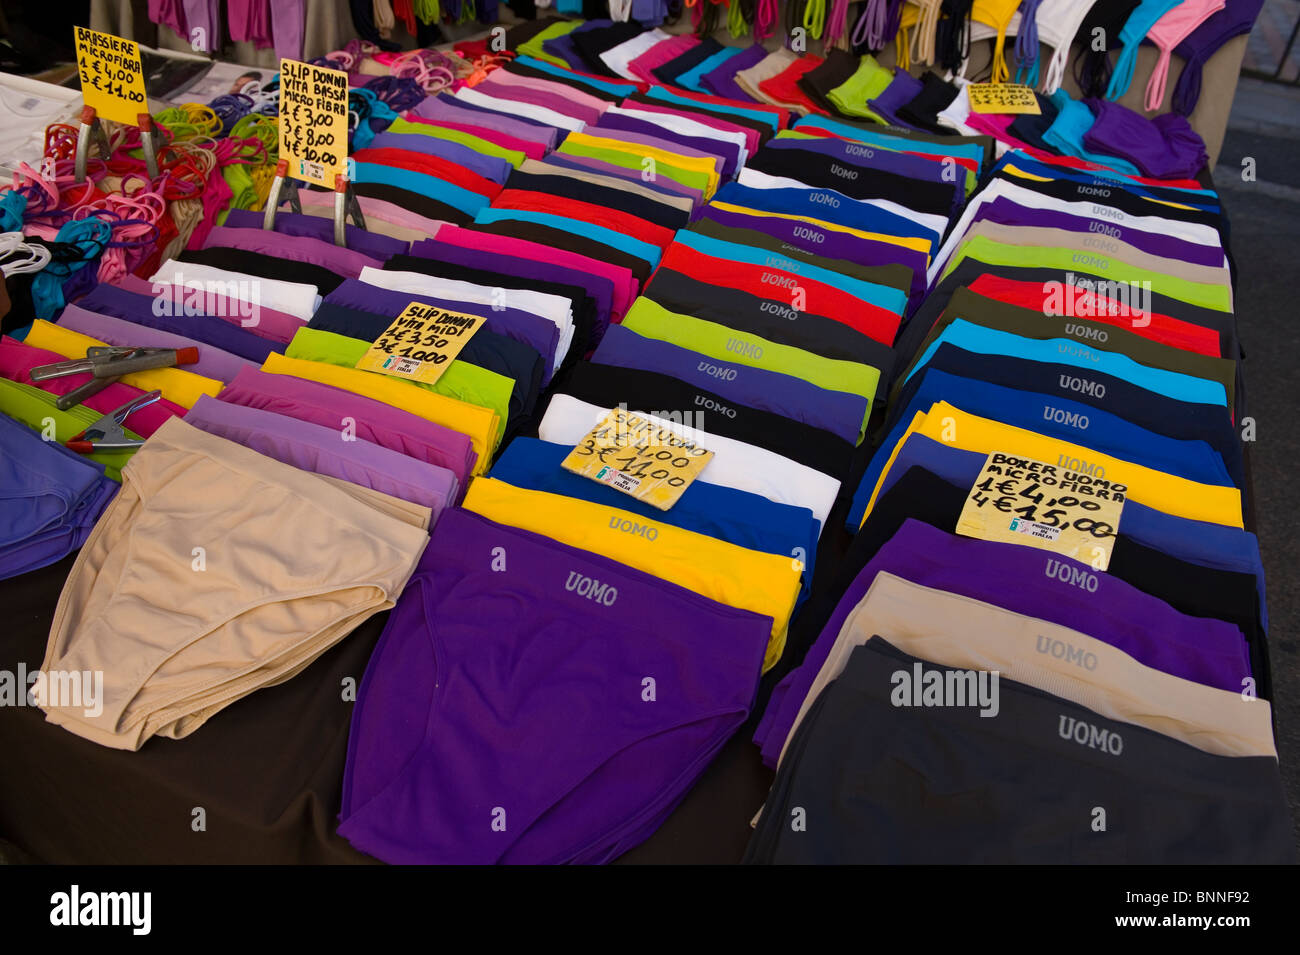 Italy. Tuscany. Colle di val d'Elsa. The weekly market. Pants for sale. - Stock Image